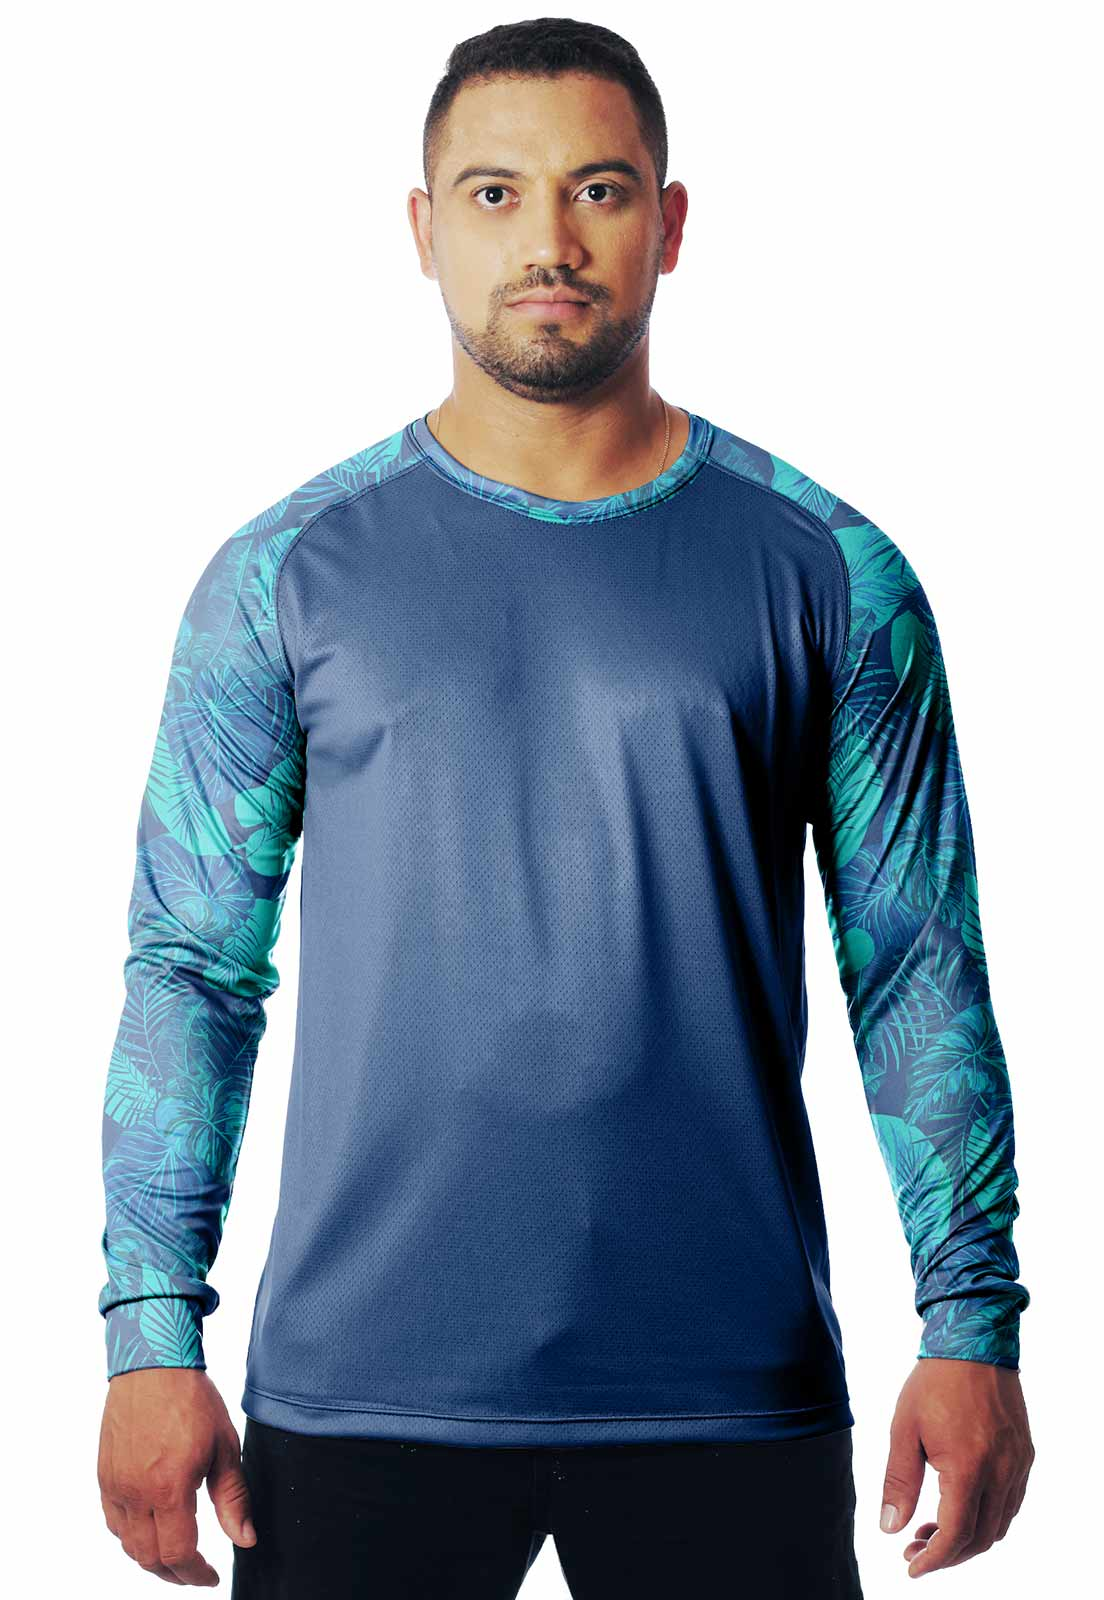 CAMISETA CAMUFLADAFOLHAGEM LAZER 08 MANGA LONGA MASCULINA - REAL HUNTER OUTDOORS